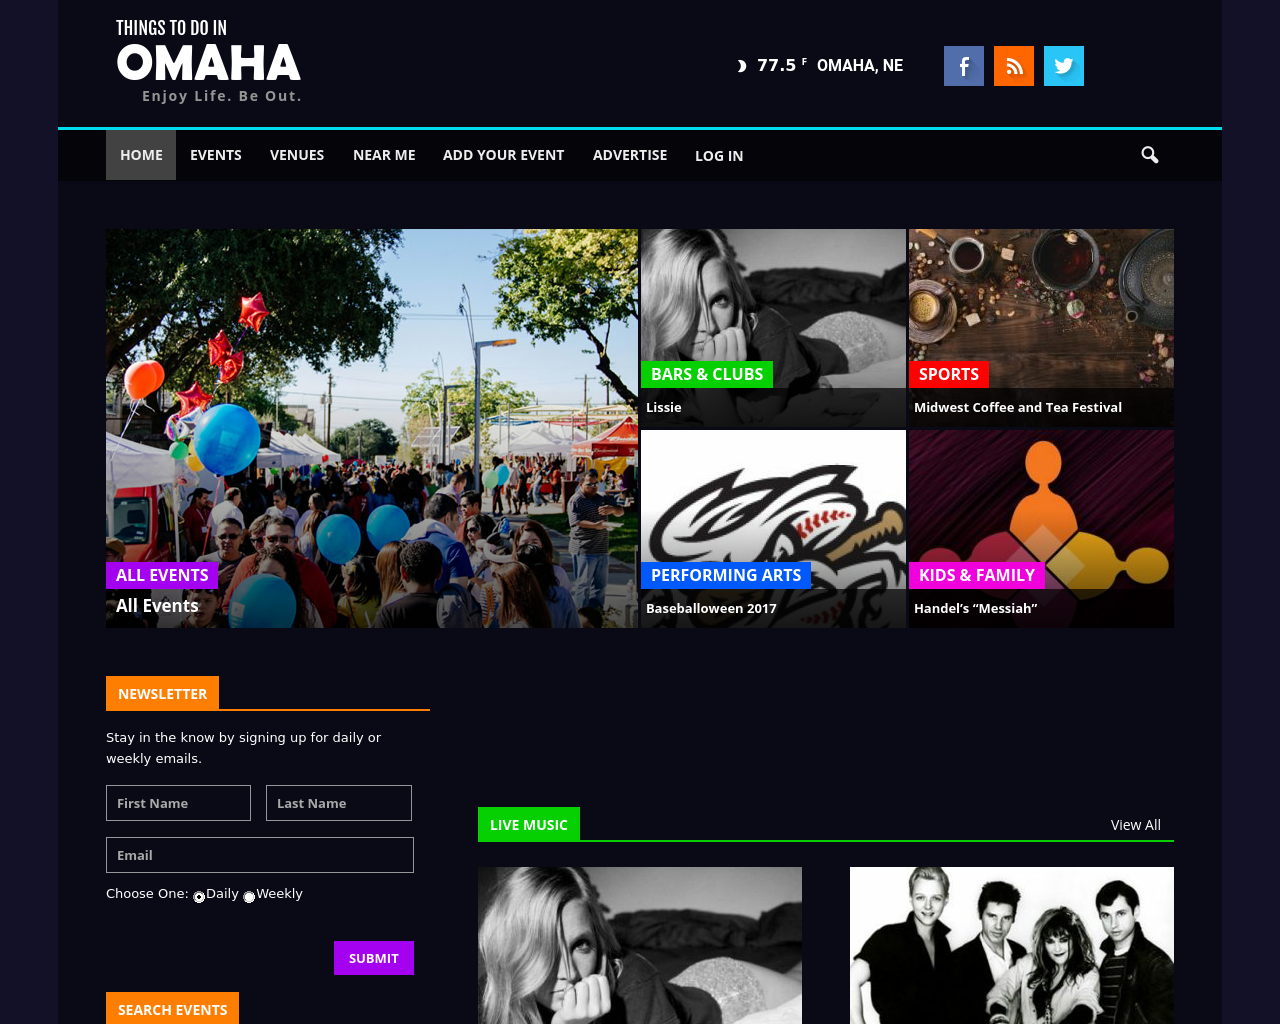 Things-To-Do-In-Omaha,-NE-Advertising-Reviews-Pricing